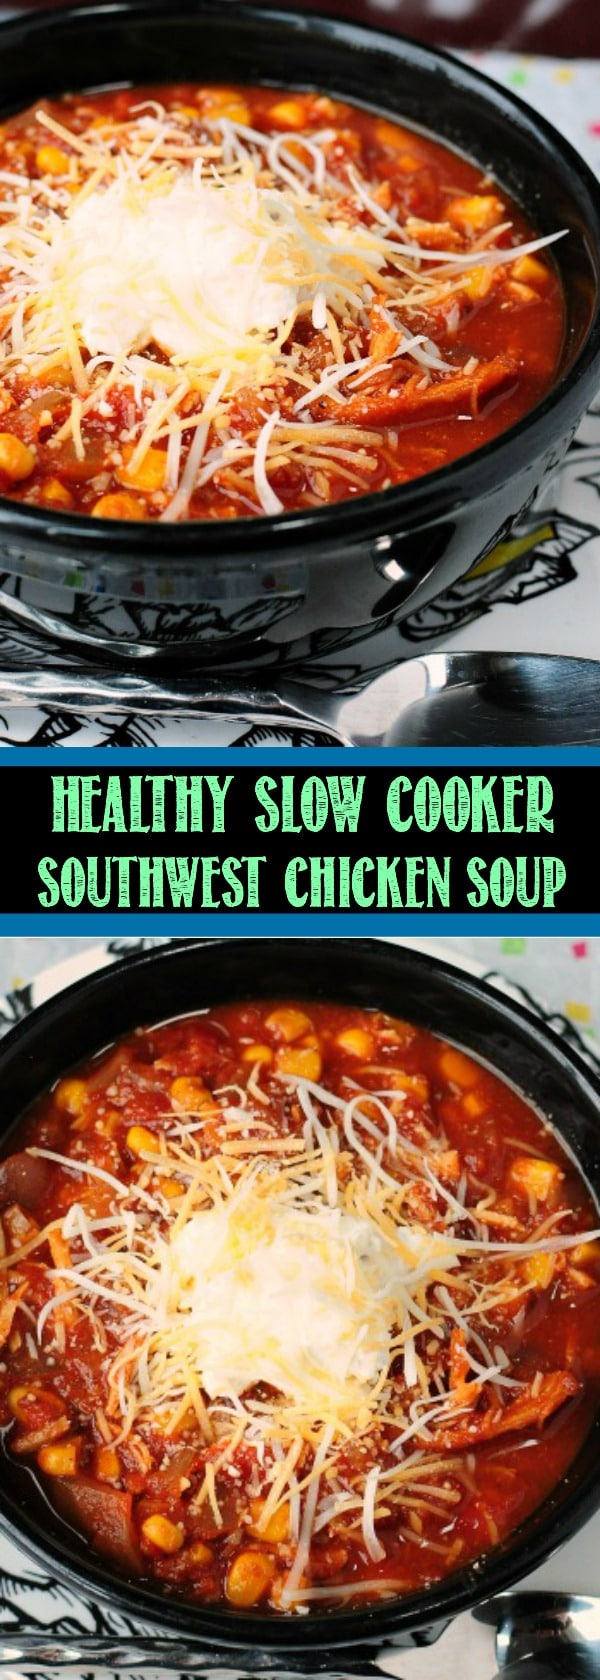 Healthy Slow Cooker Southwest Chicken Soup